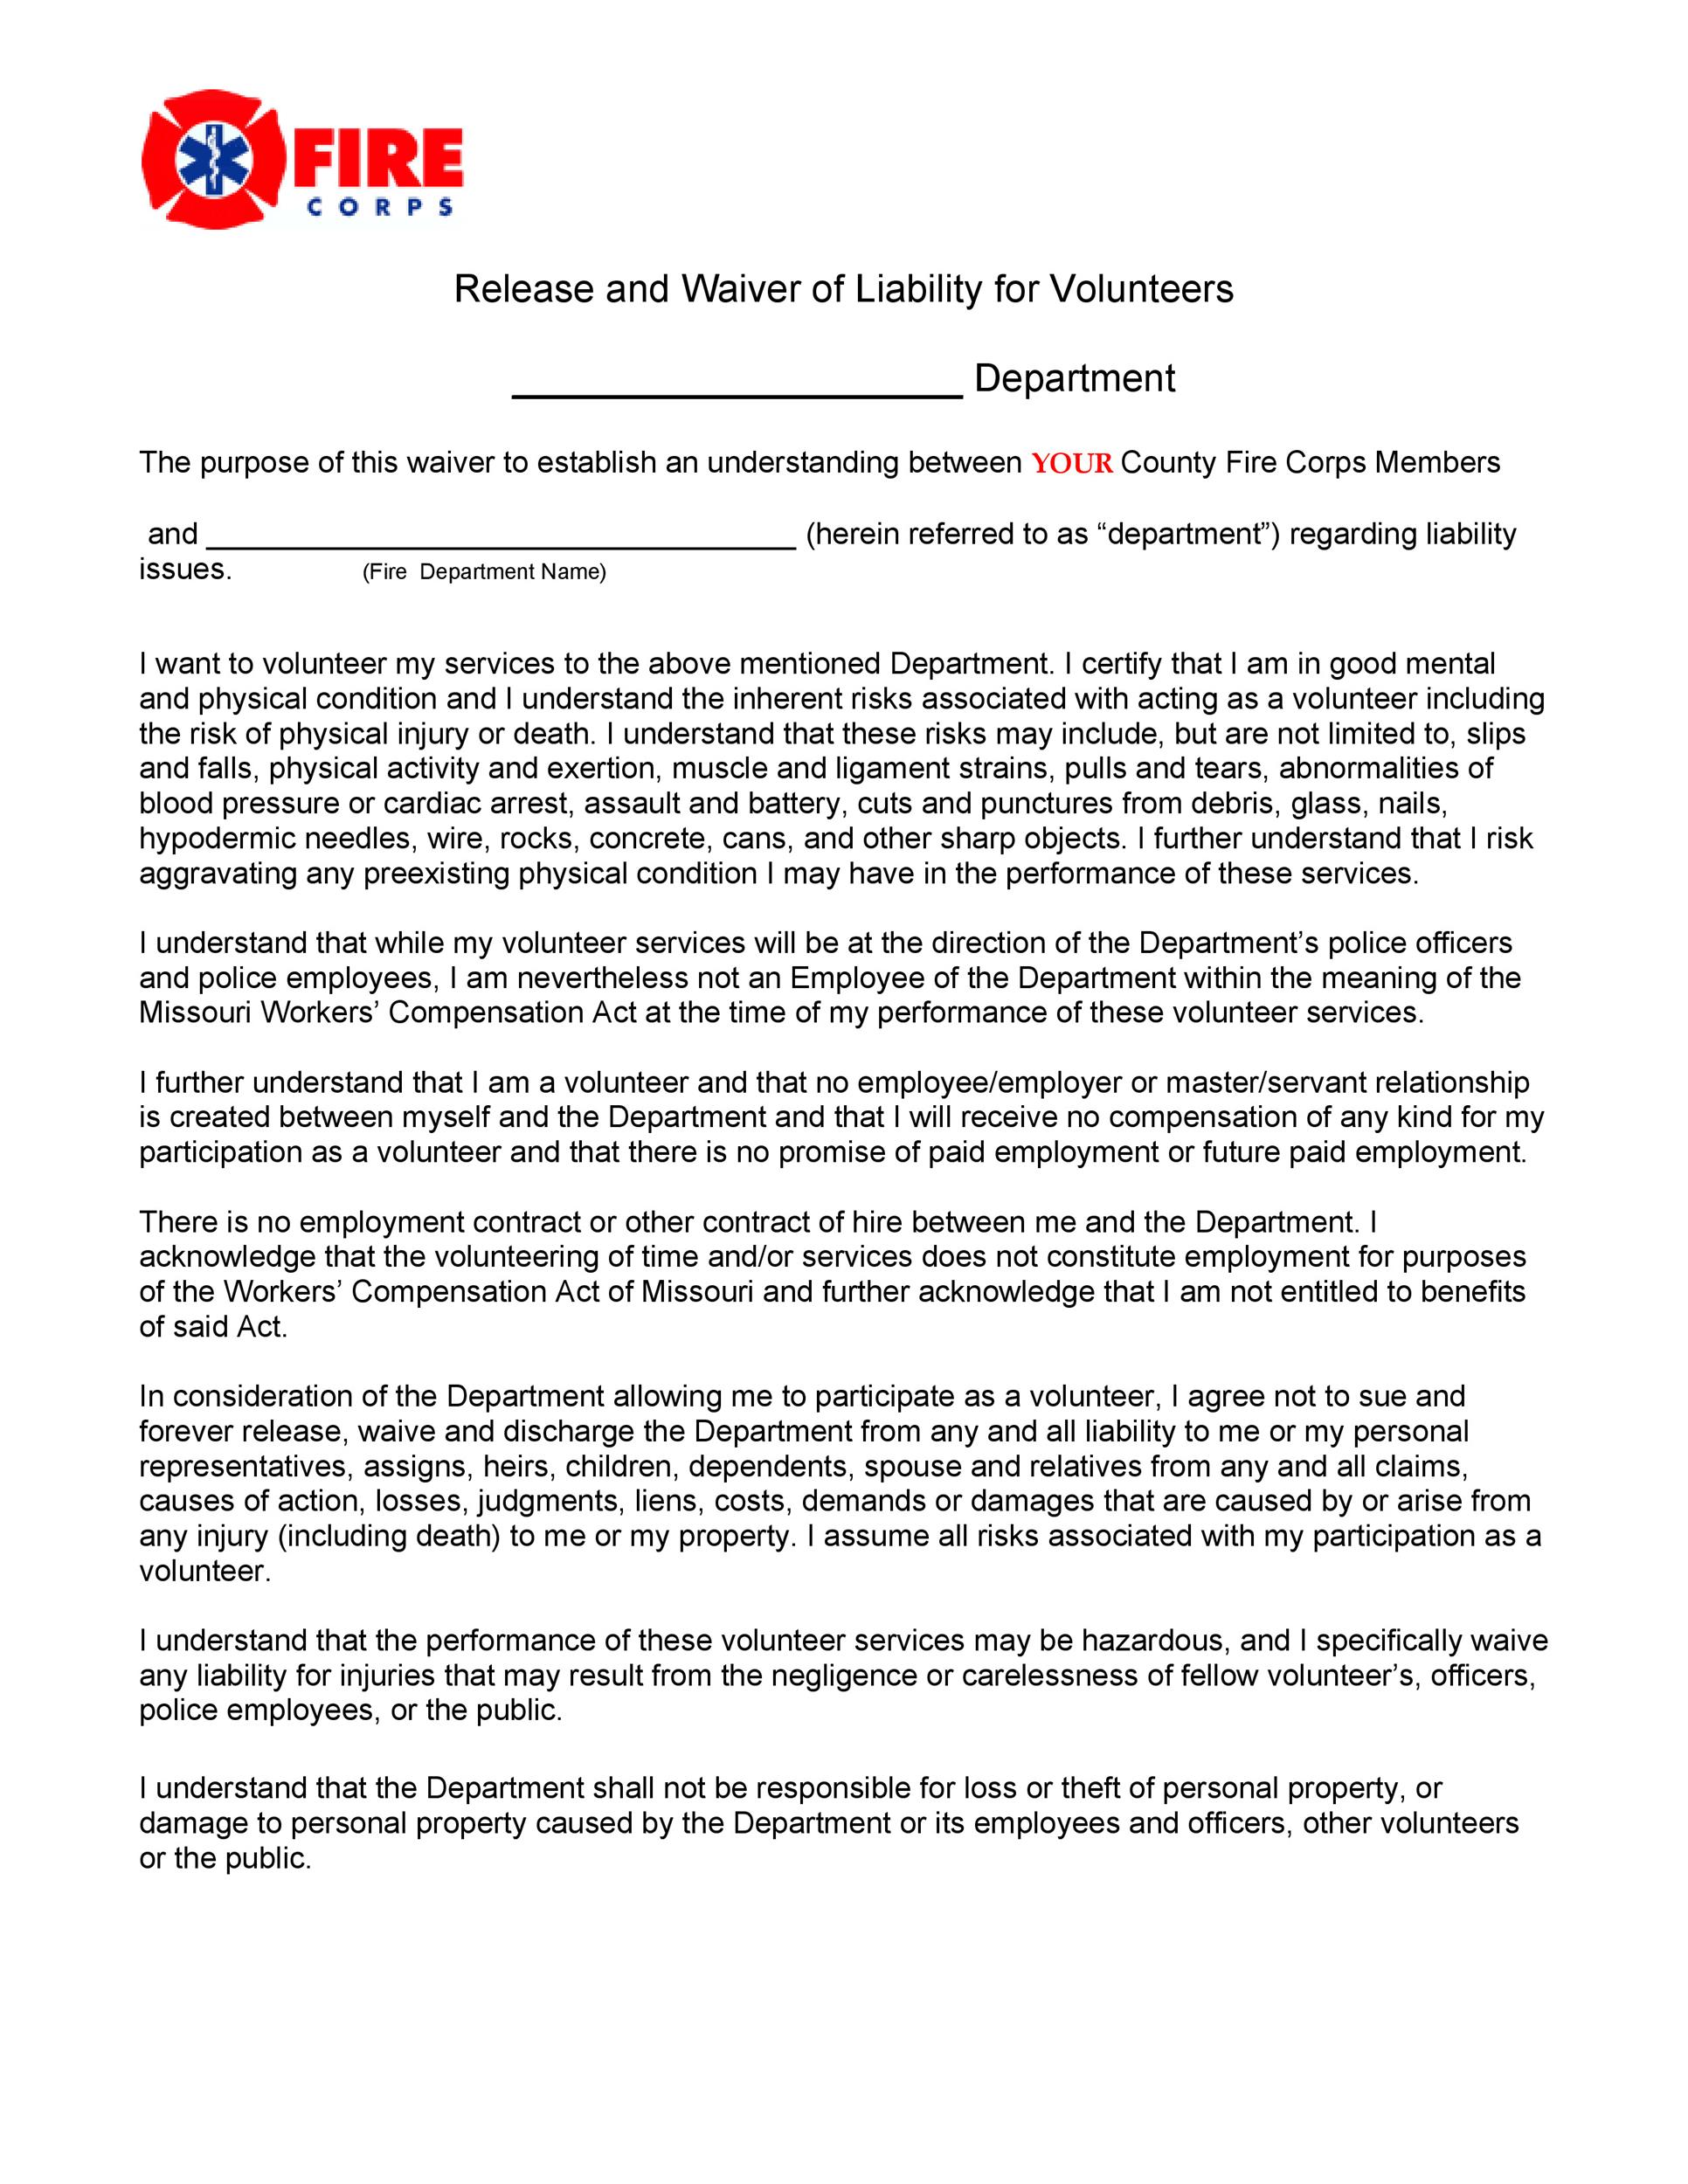 Free release of liability form 30